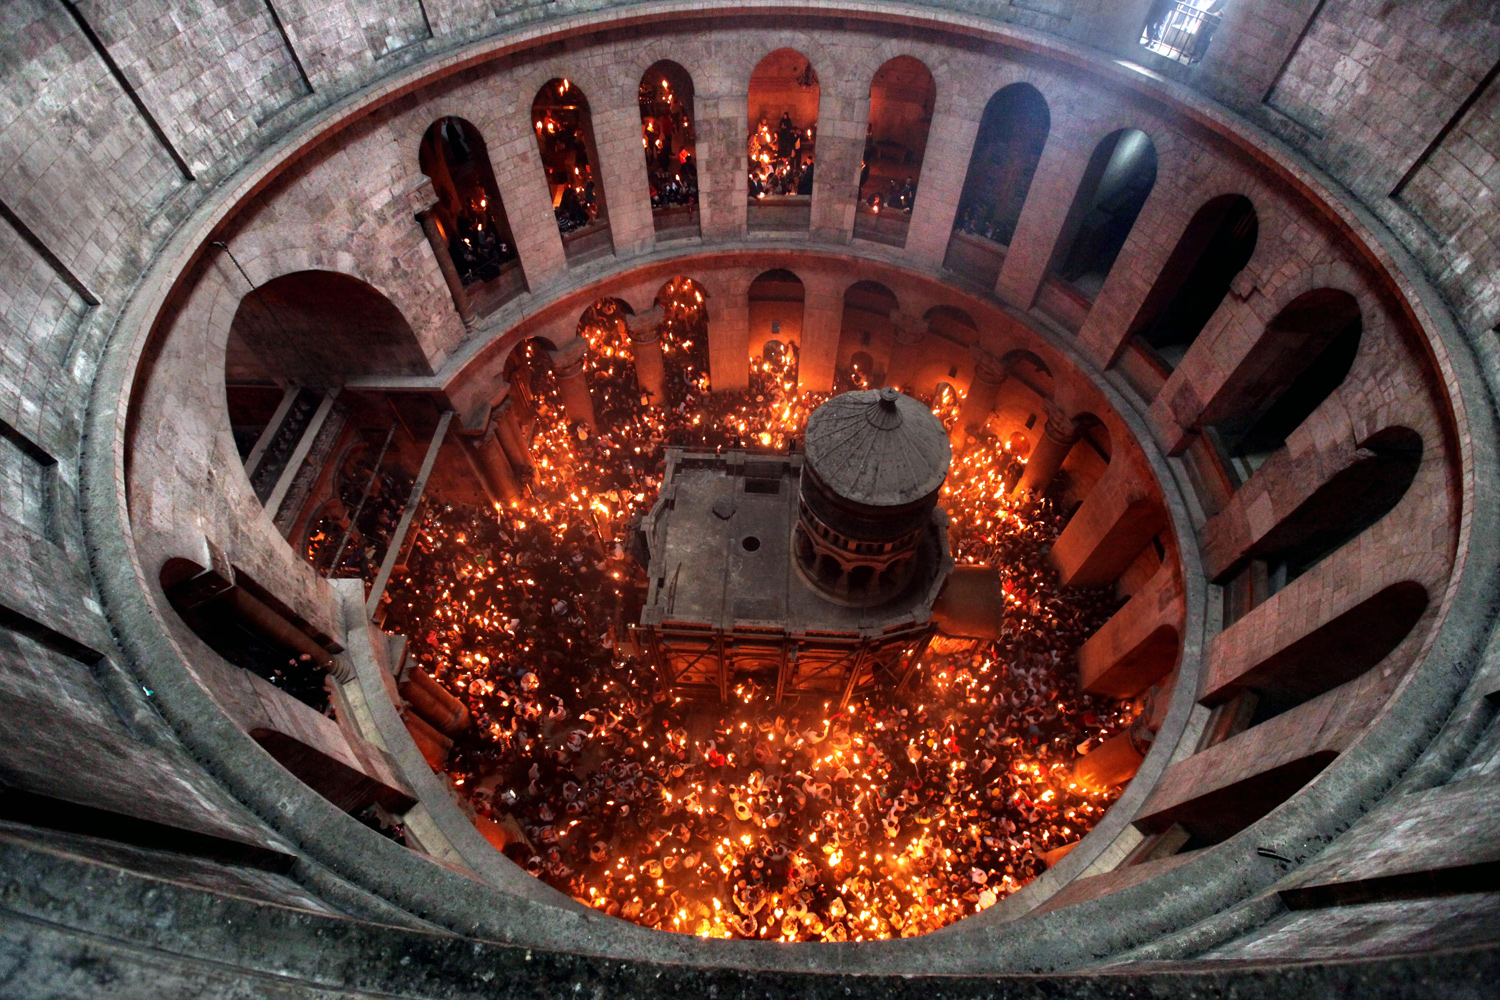 April 23, 2011. An aerial view from the rotunda inside the Church of the Holy Sepulchre in Jerusalem that shows the Tomb of Christ as the miracle of the Holy Fire occurs the day before Easter.